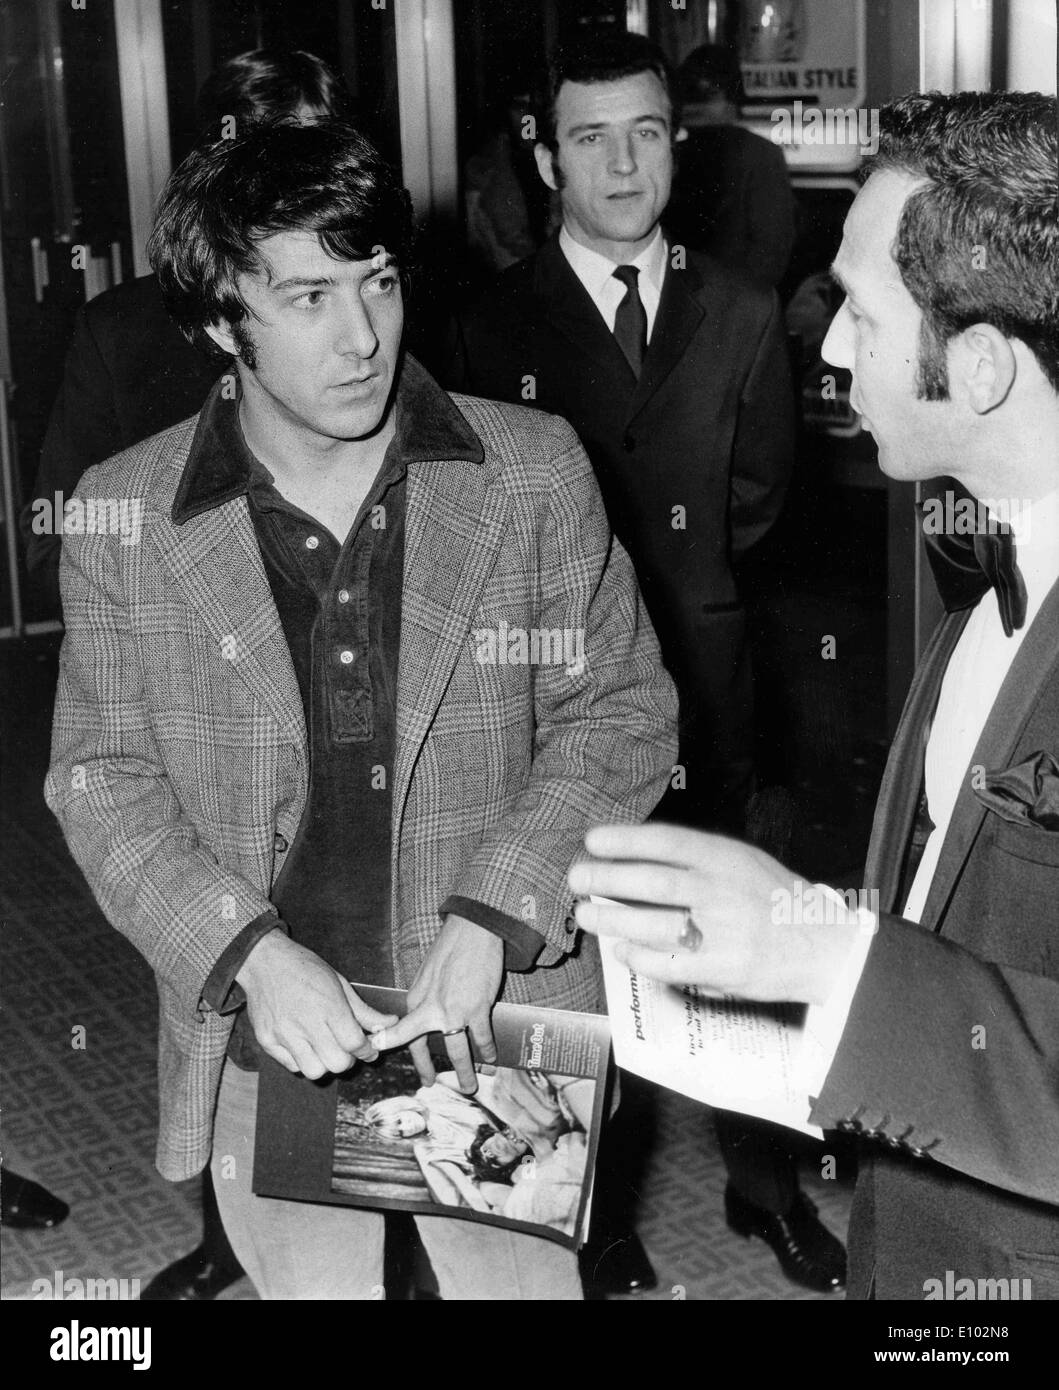 Actor Dustin Hoffman at 'Performance' premiere - Stock Image